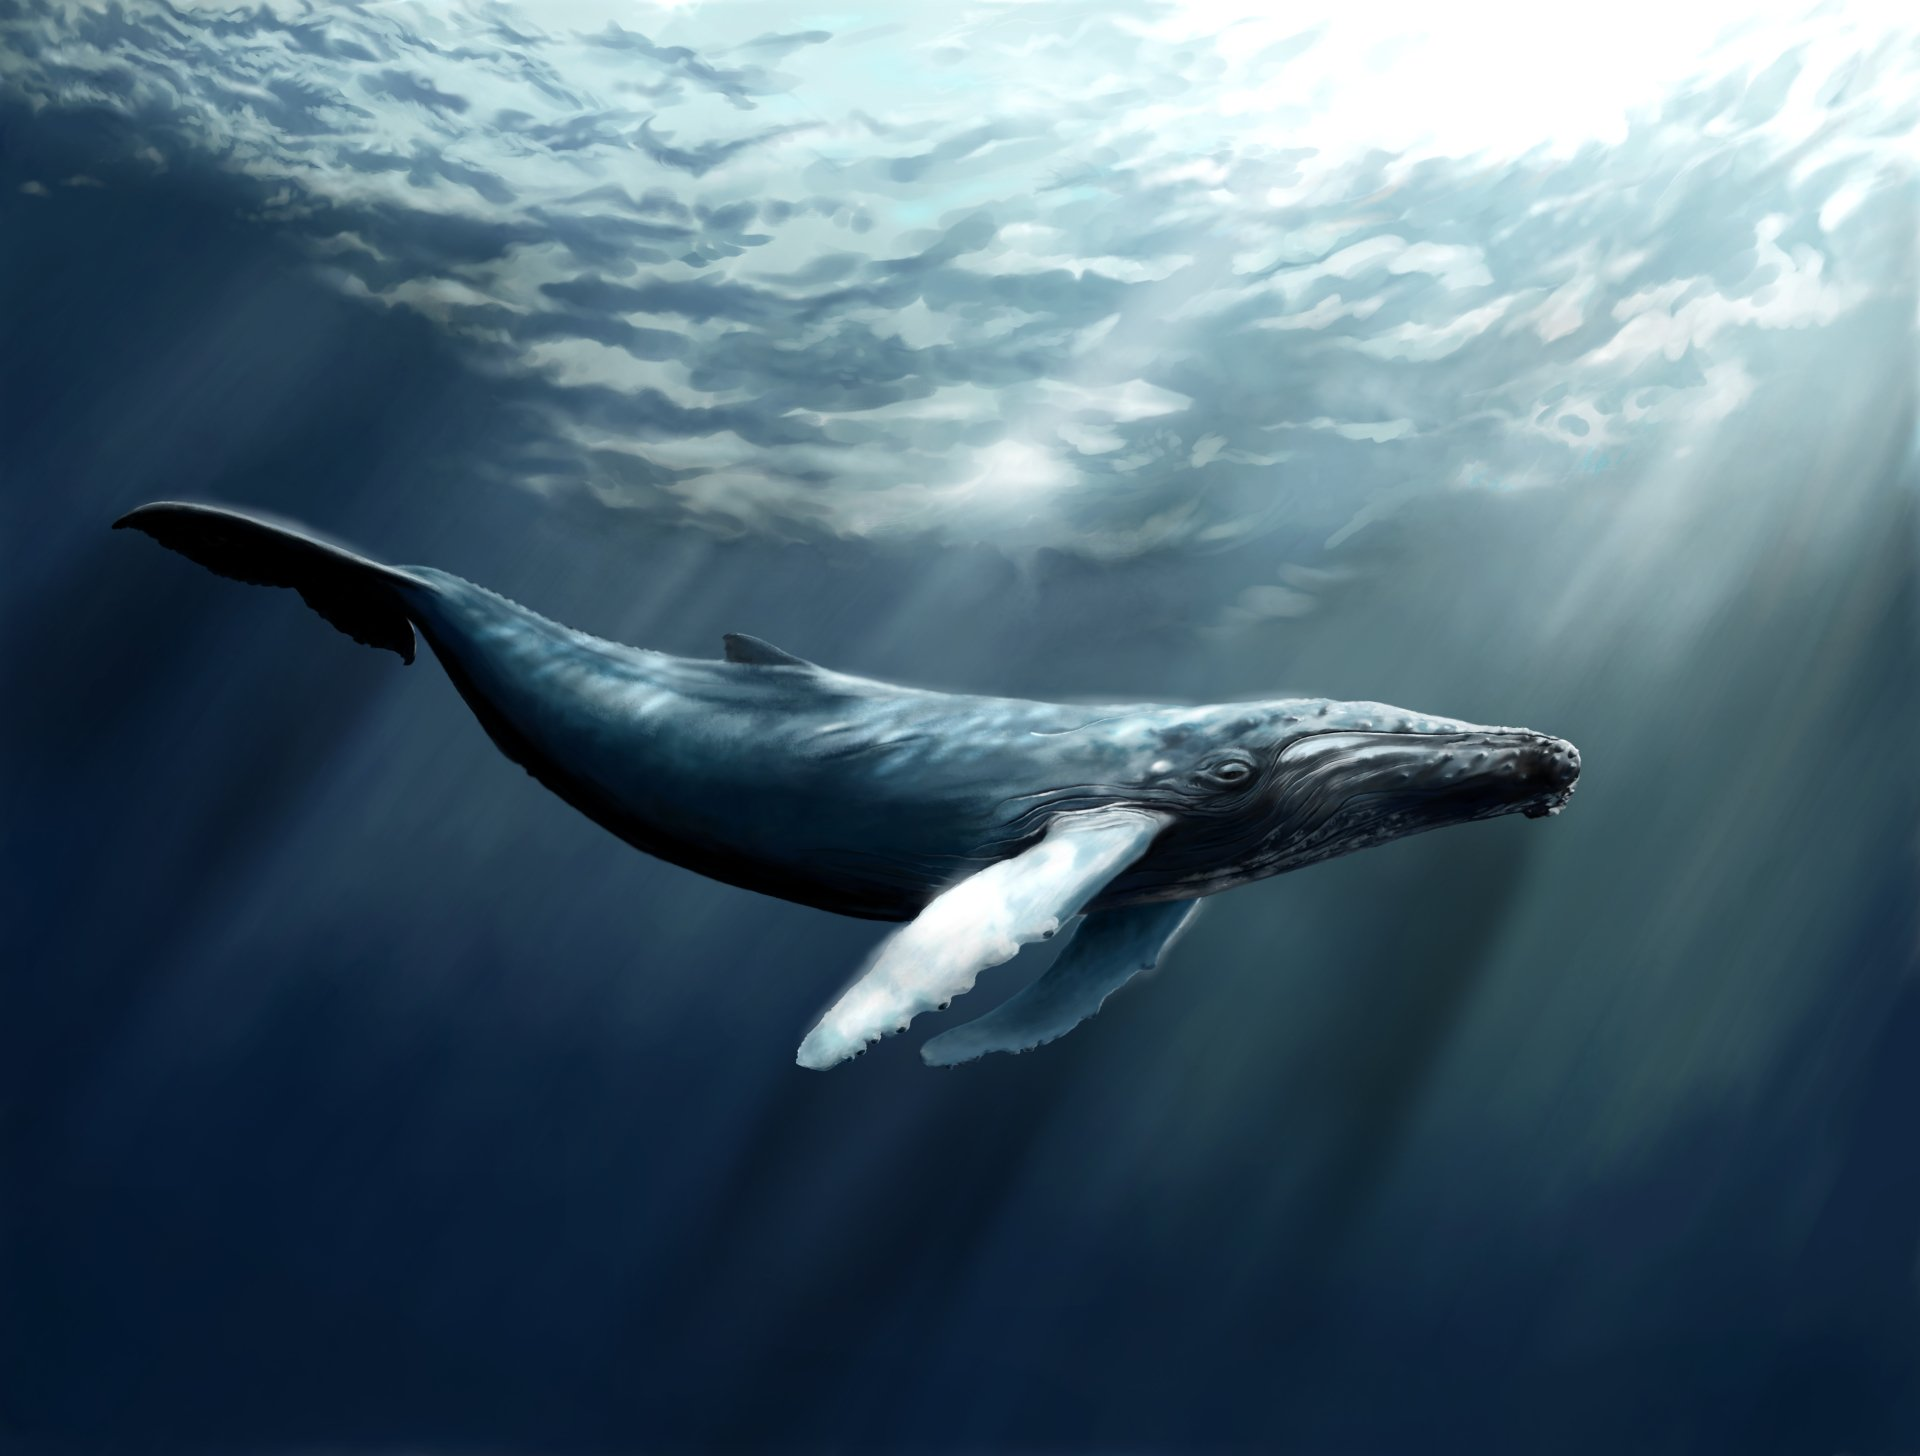 whale wallpaper design ideas for your computer